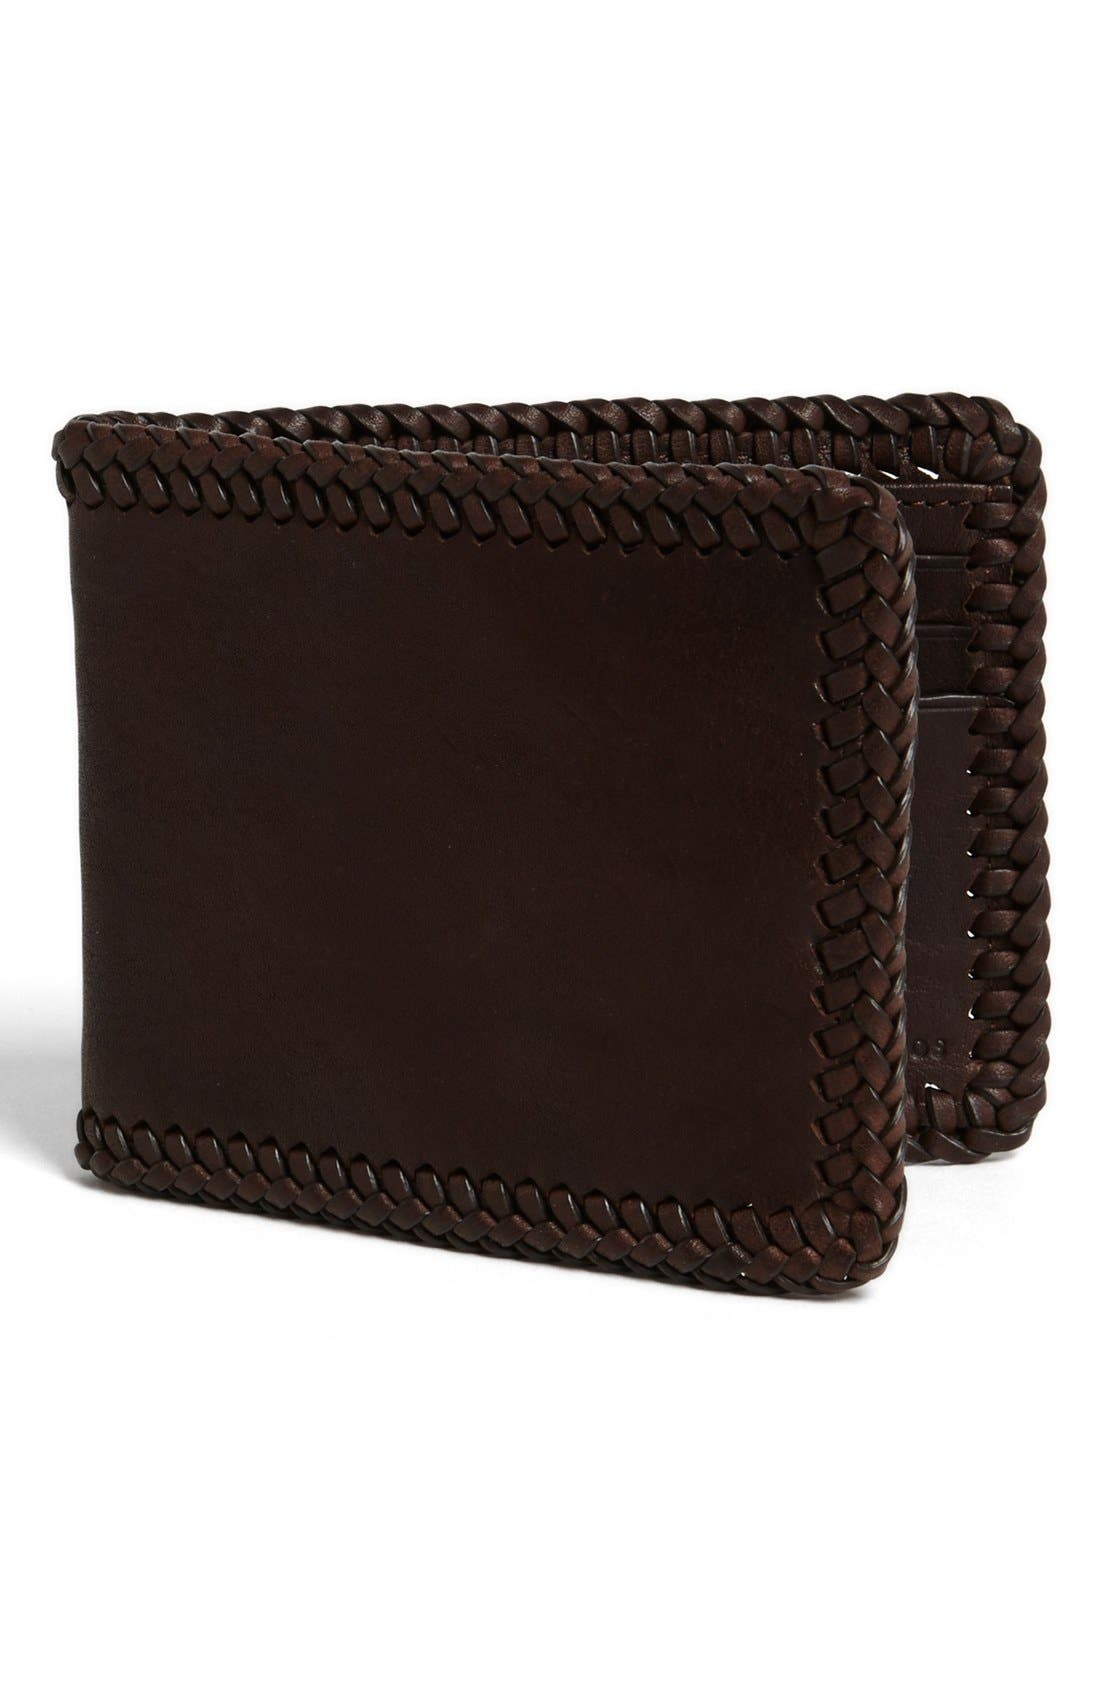 Alternate Image 1 Selected - John Varvatos Collection Braided Leather Wallet